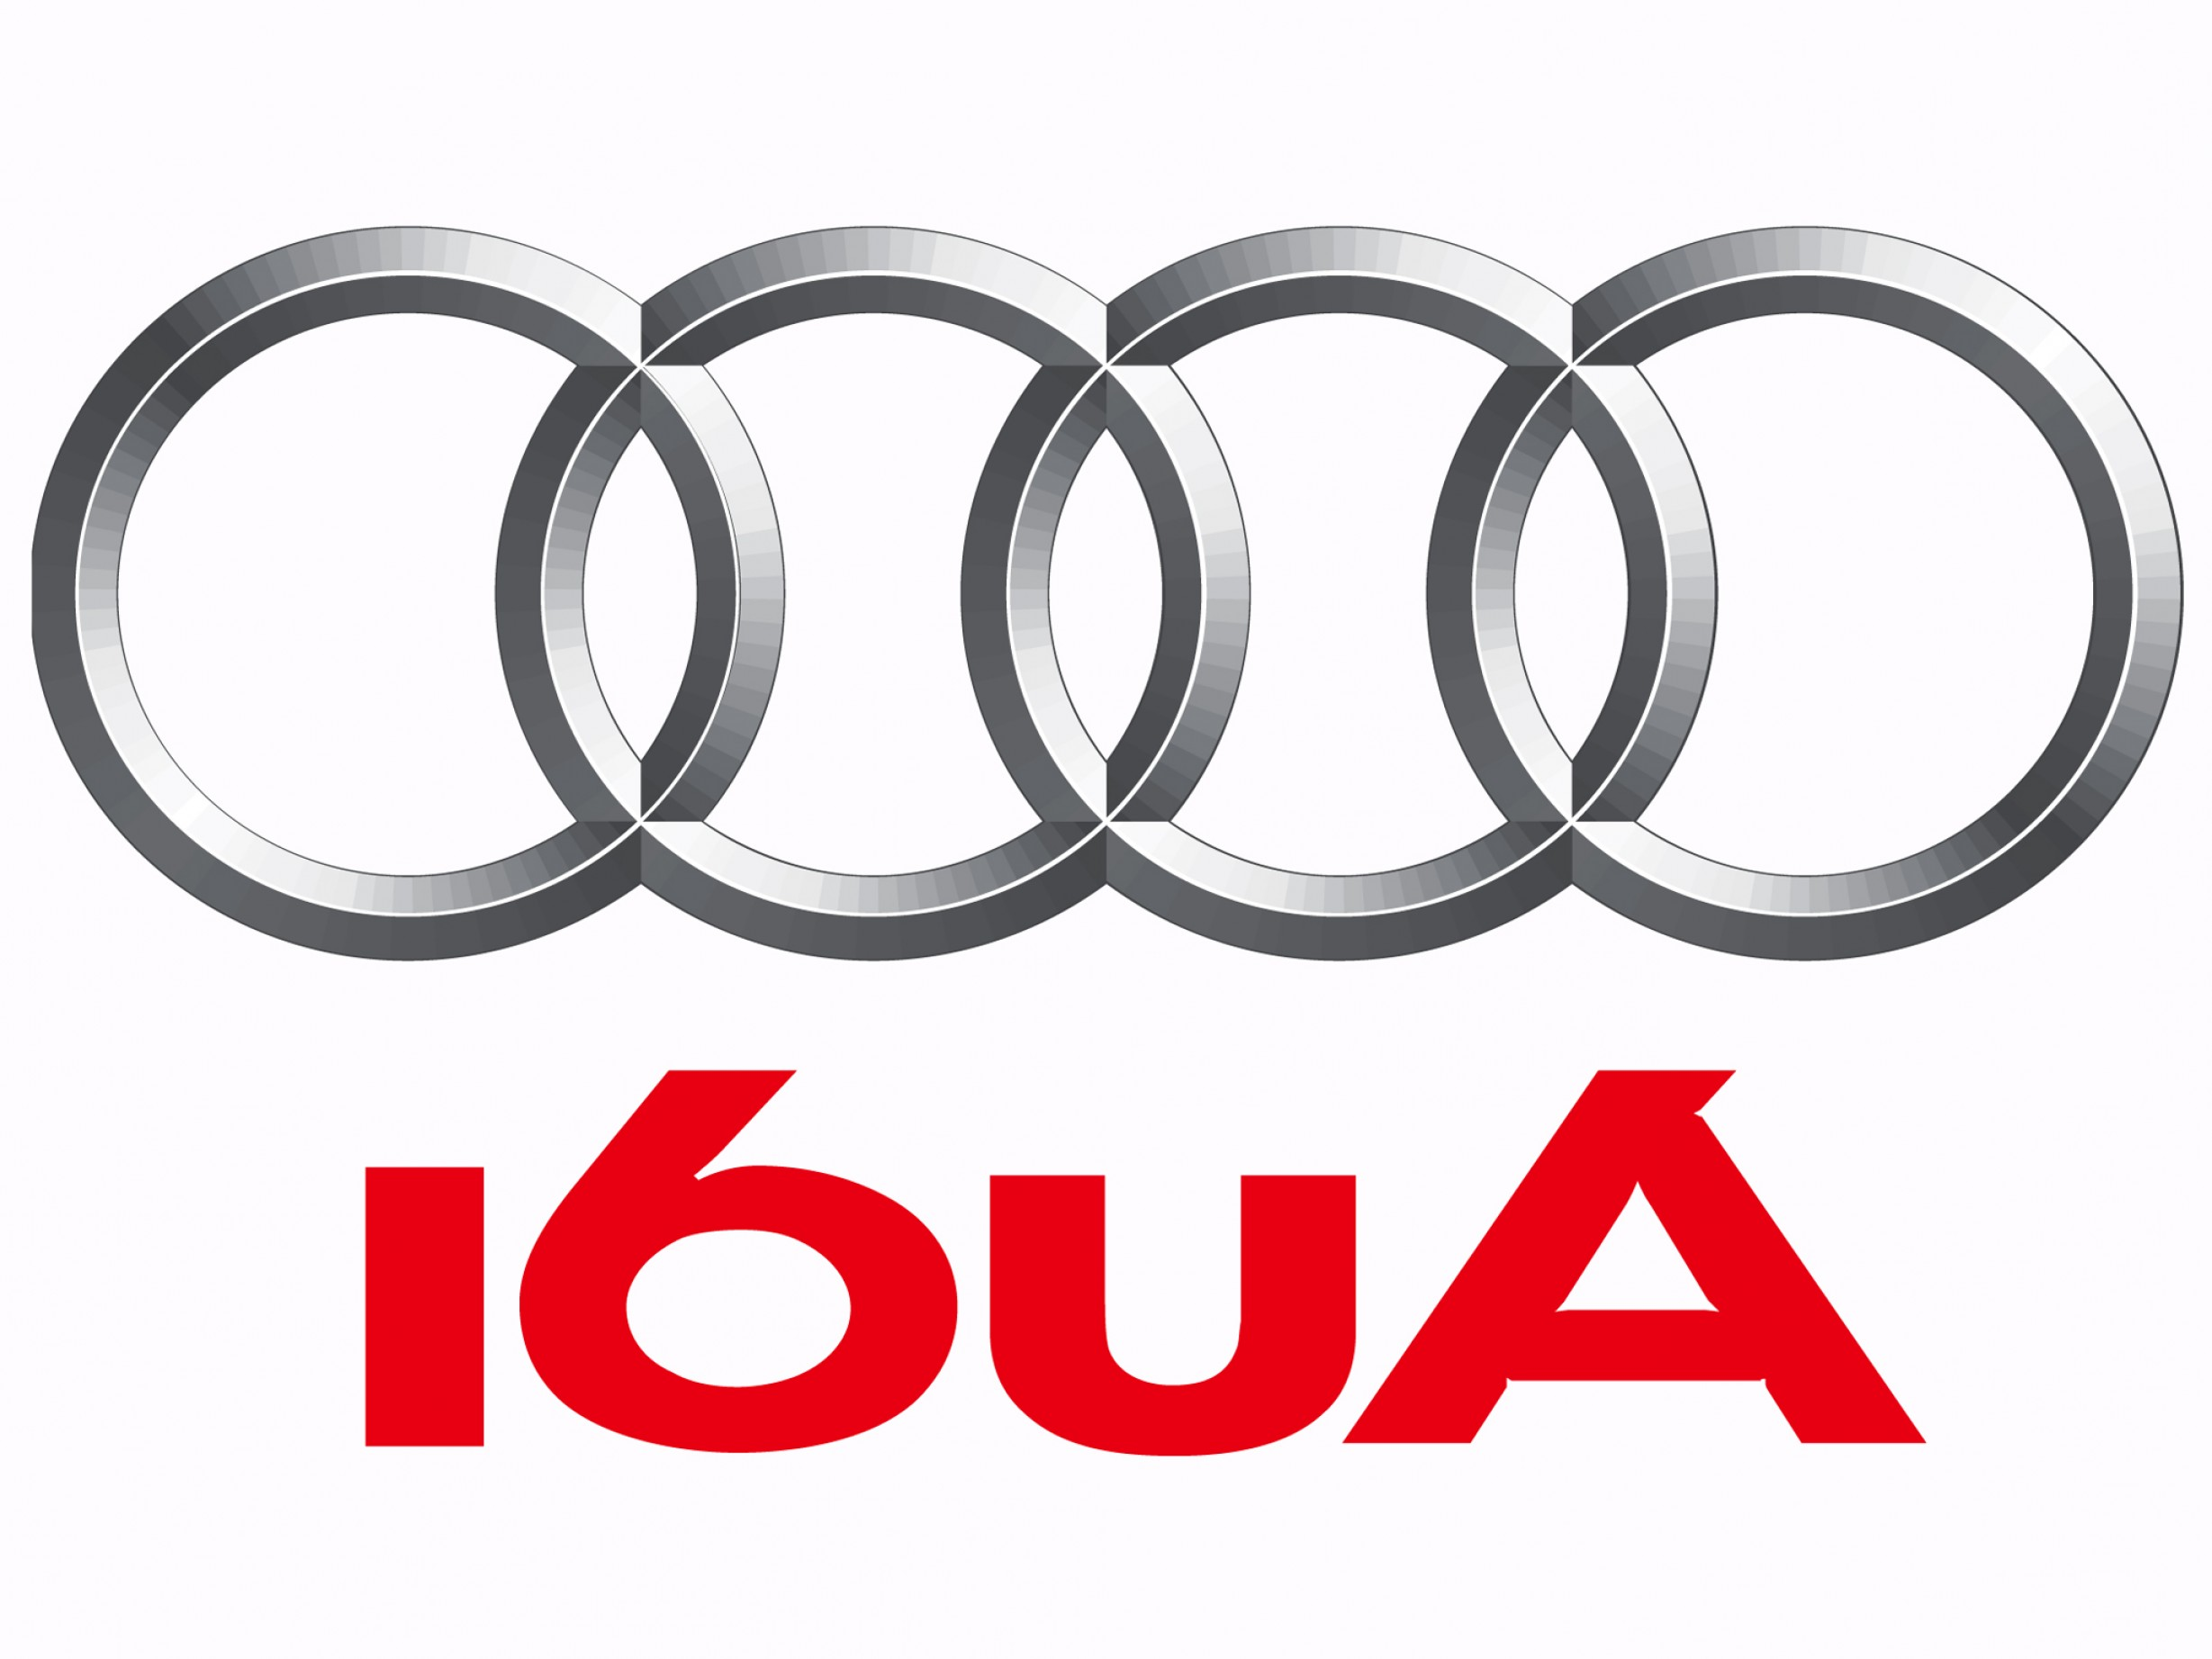 2457x1843 Audi Logo Vector Wallpaper Shopatcloth